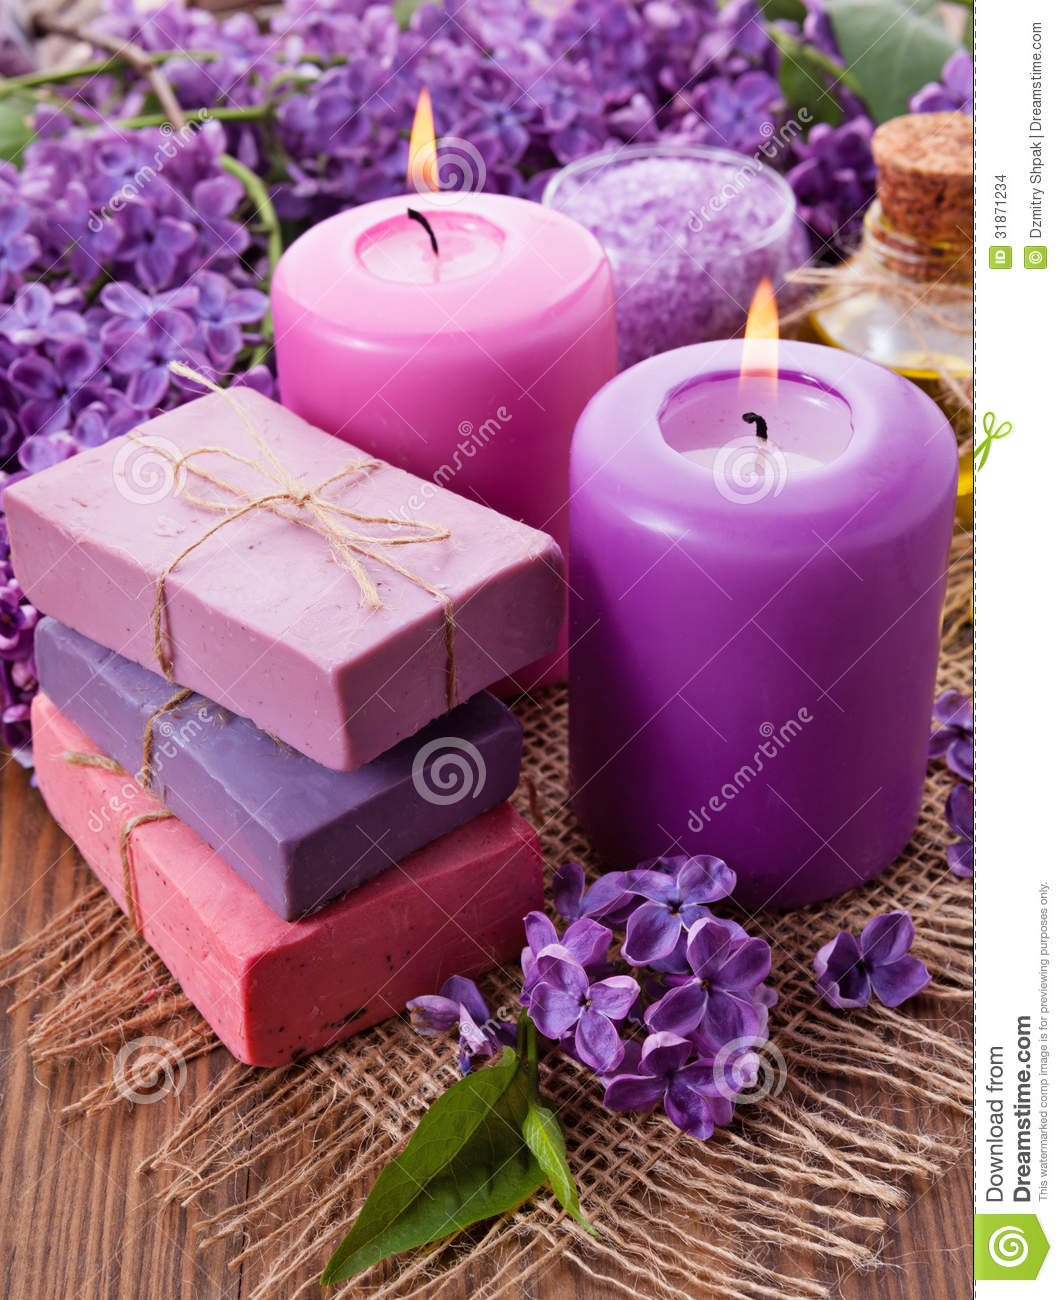 Handmade Soap, Candle And Lilac Stock Images - Image: 31871234